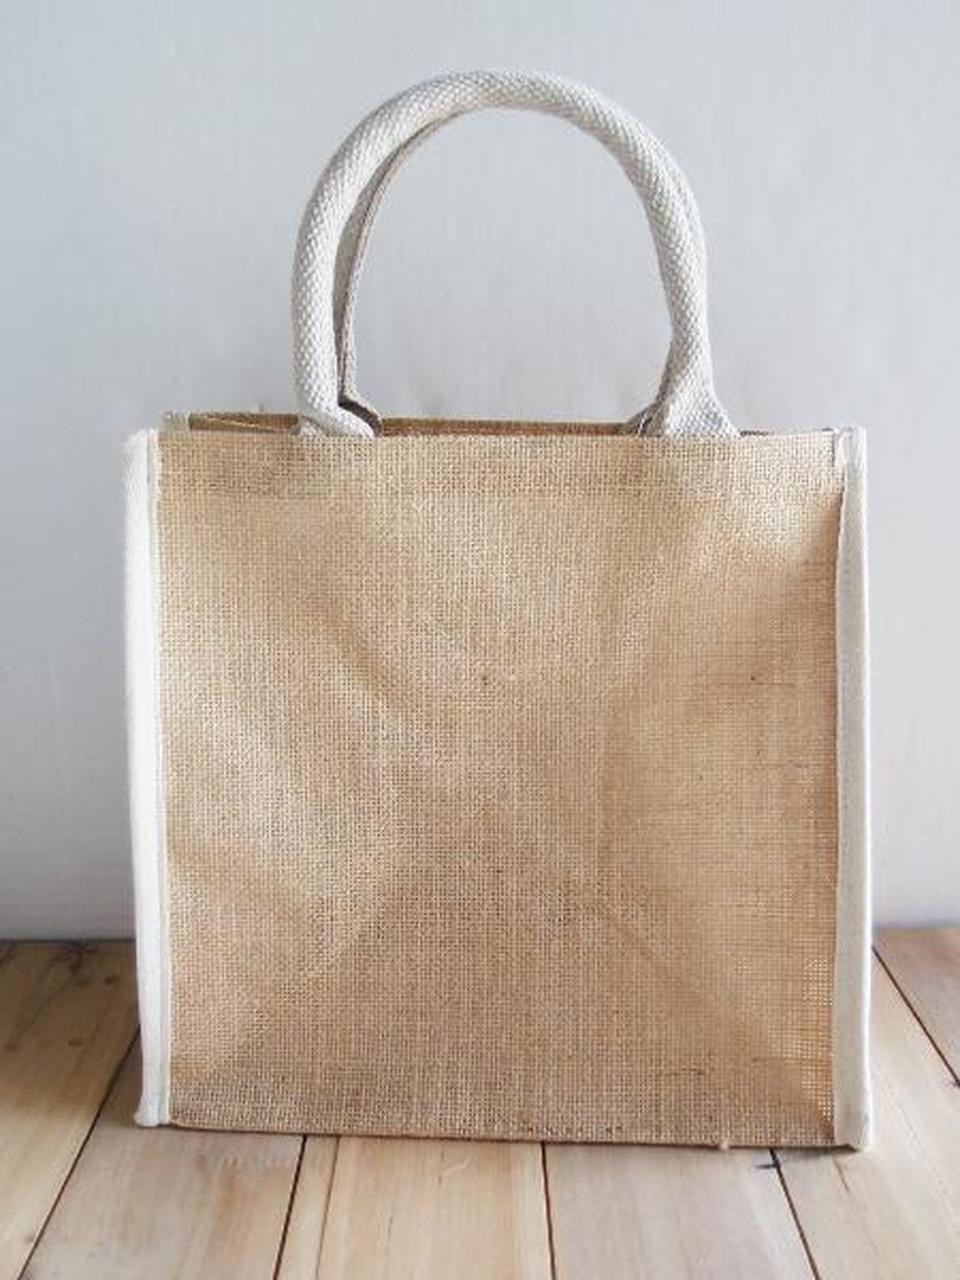 """Wholesale Jute Tote Bags, Jute Tote Bag with White Cotton Trim 12"""" W x 12"""" H x 7 3/4"""" Gusset , B875-71 